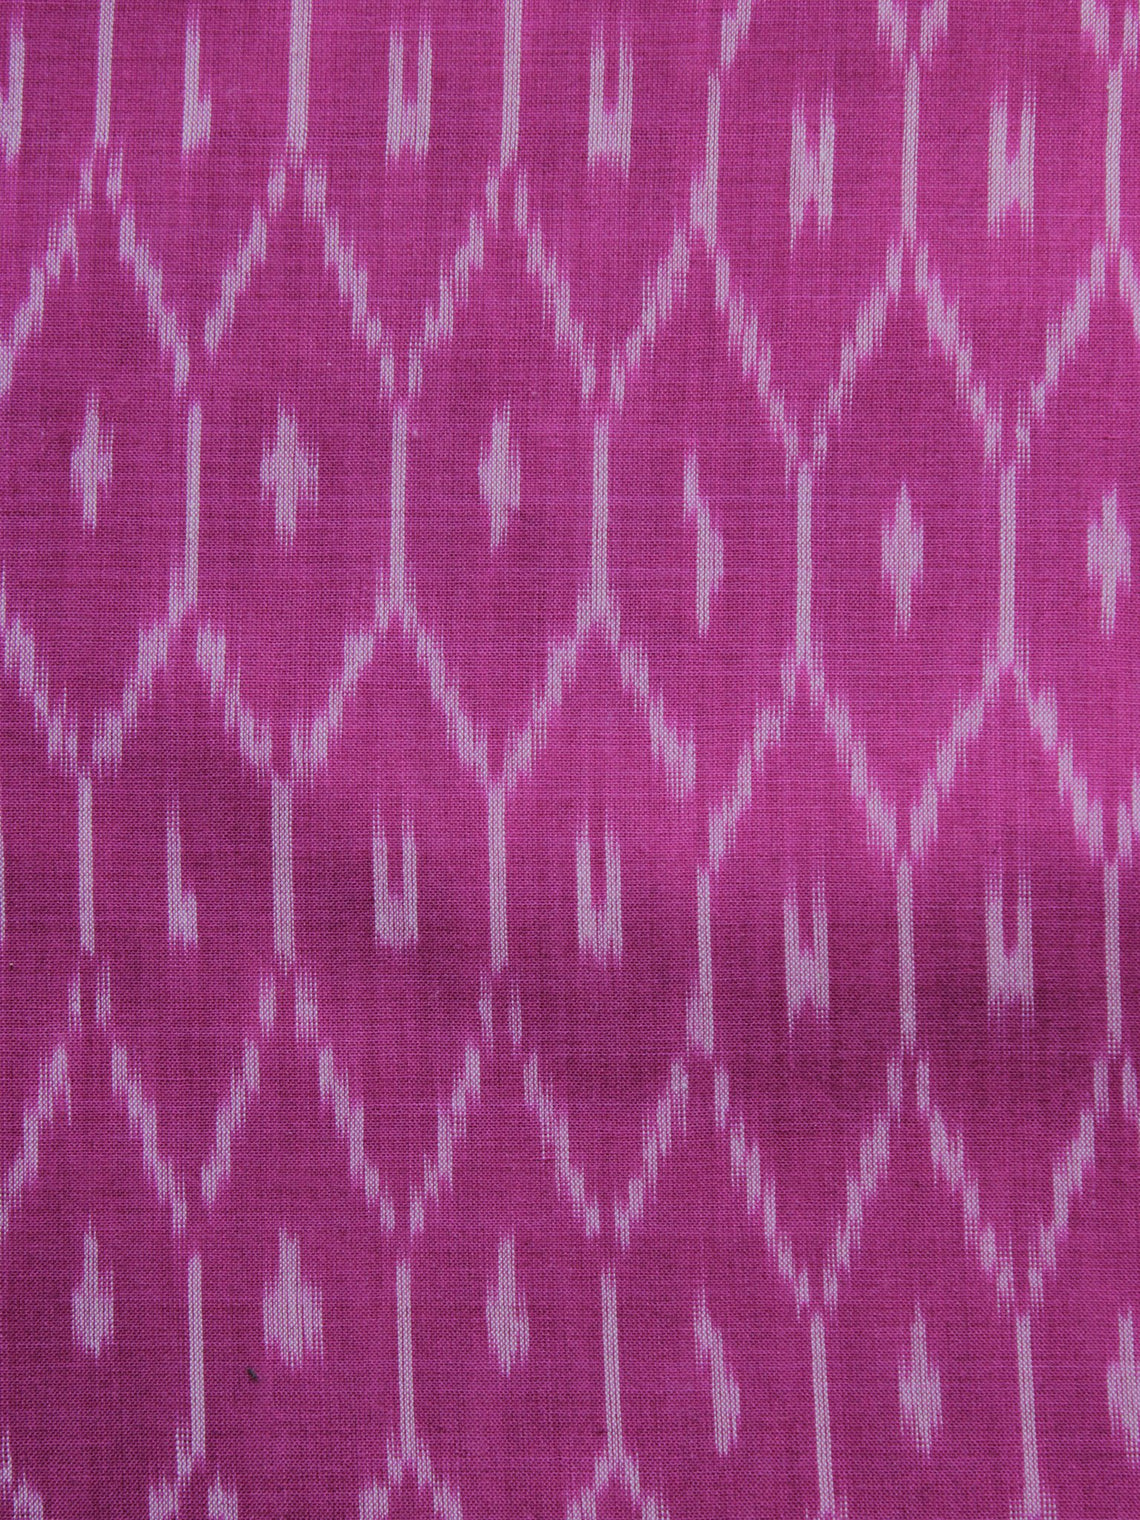 Pink Ivory Pochampally Hand Weaved Ikat Mercerised Cotton Fabric Per Meter - F002F1036